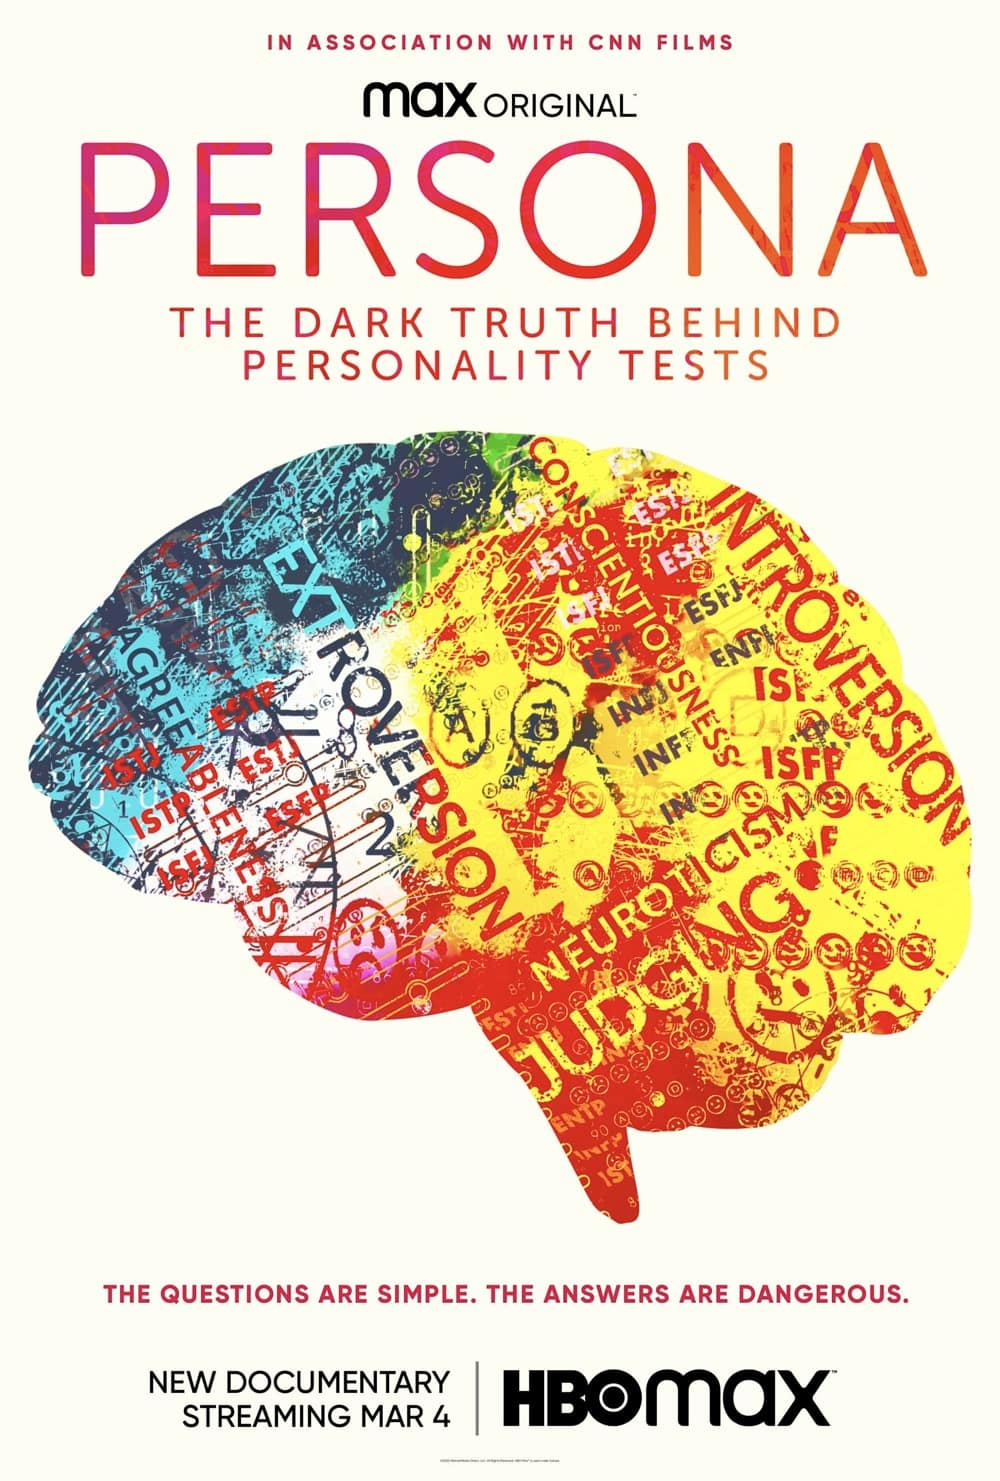 PERSONA THE DARK TRUTH BEHIND PERSONALITY TESTS Poster HBO Max